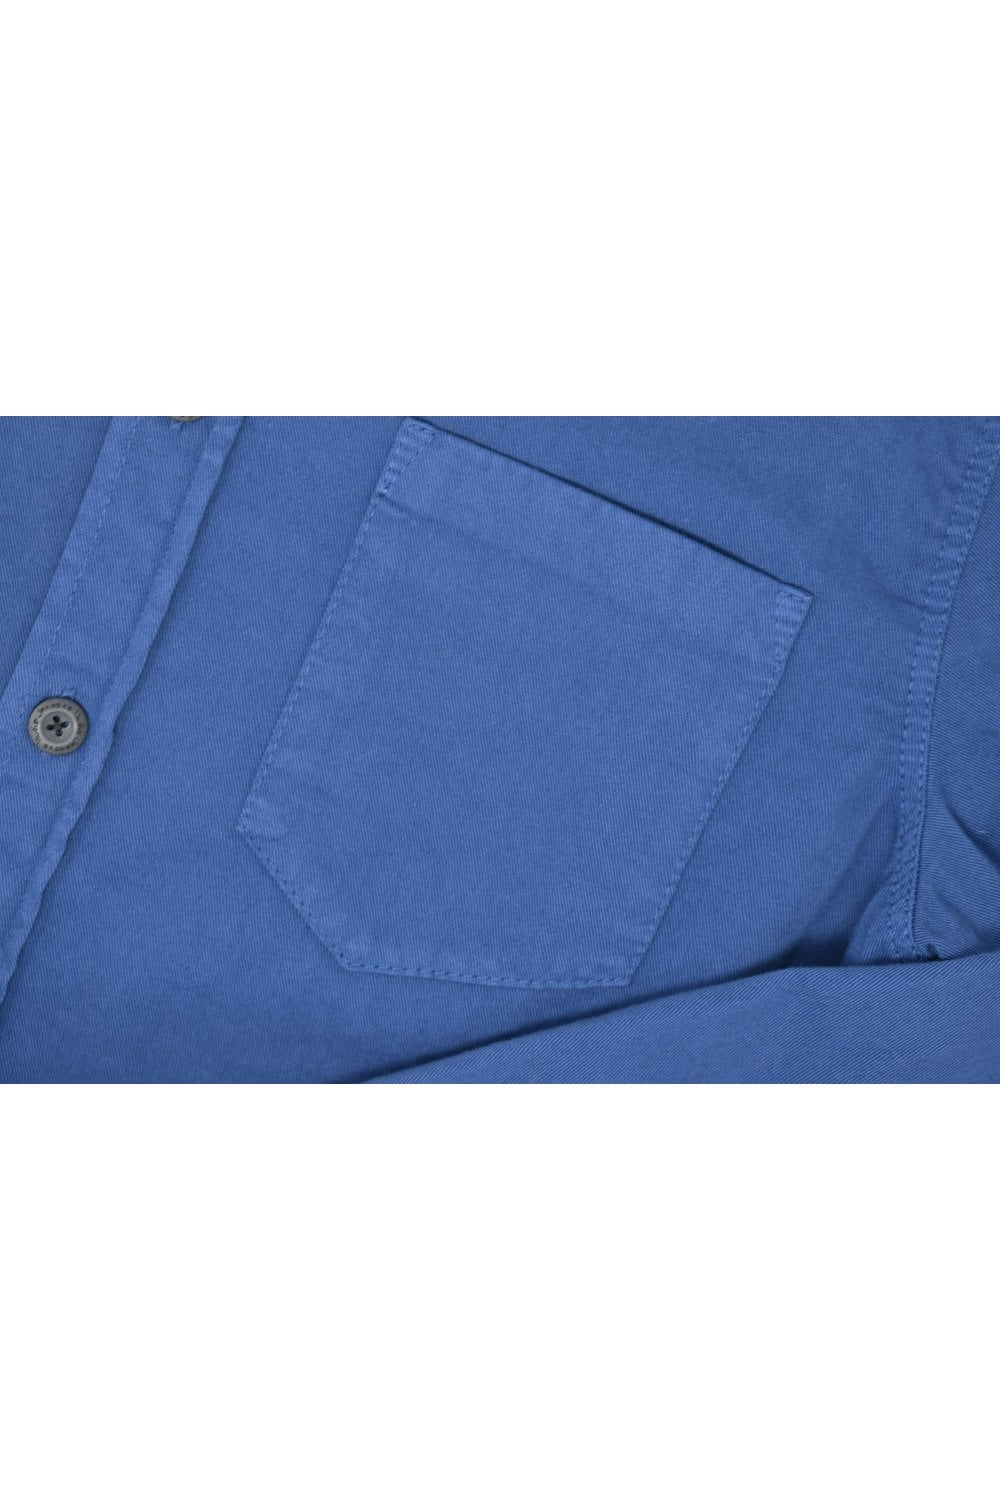 Milk Nudie Jeans Co Henry Pigment Dyed Long-Shirted Shirt